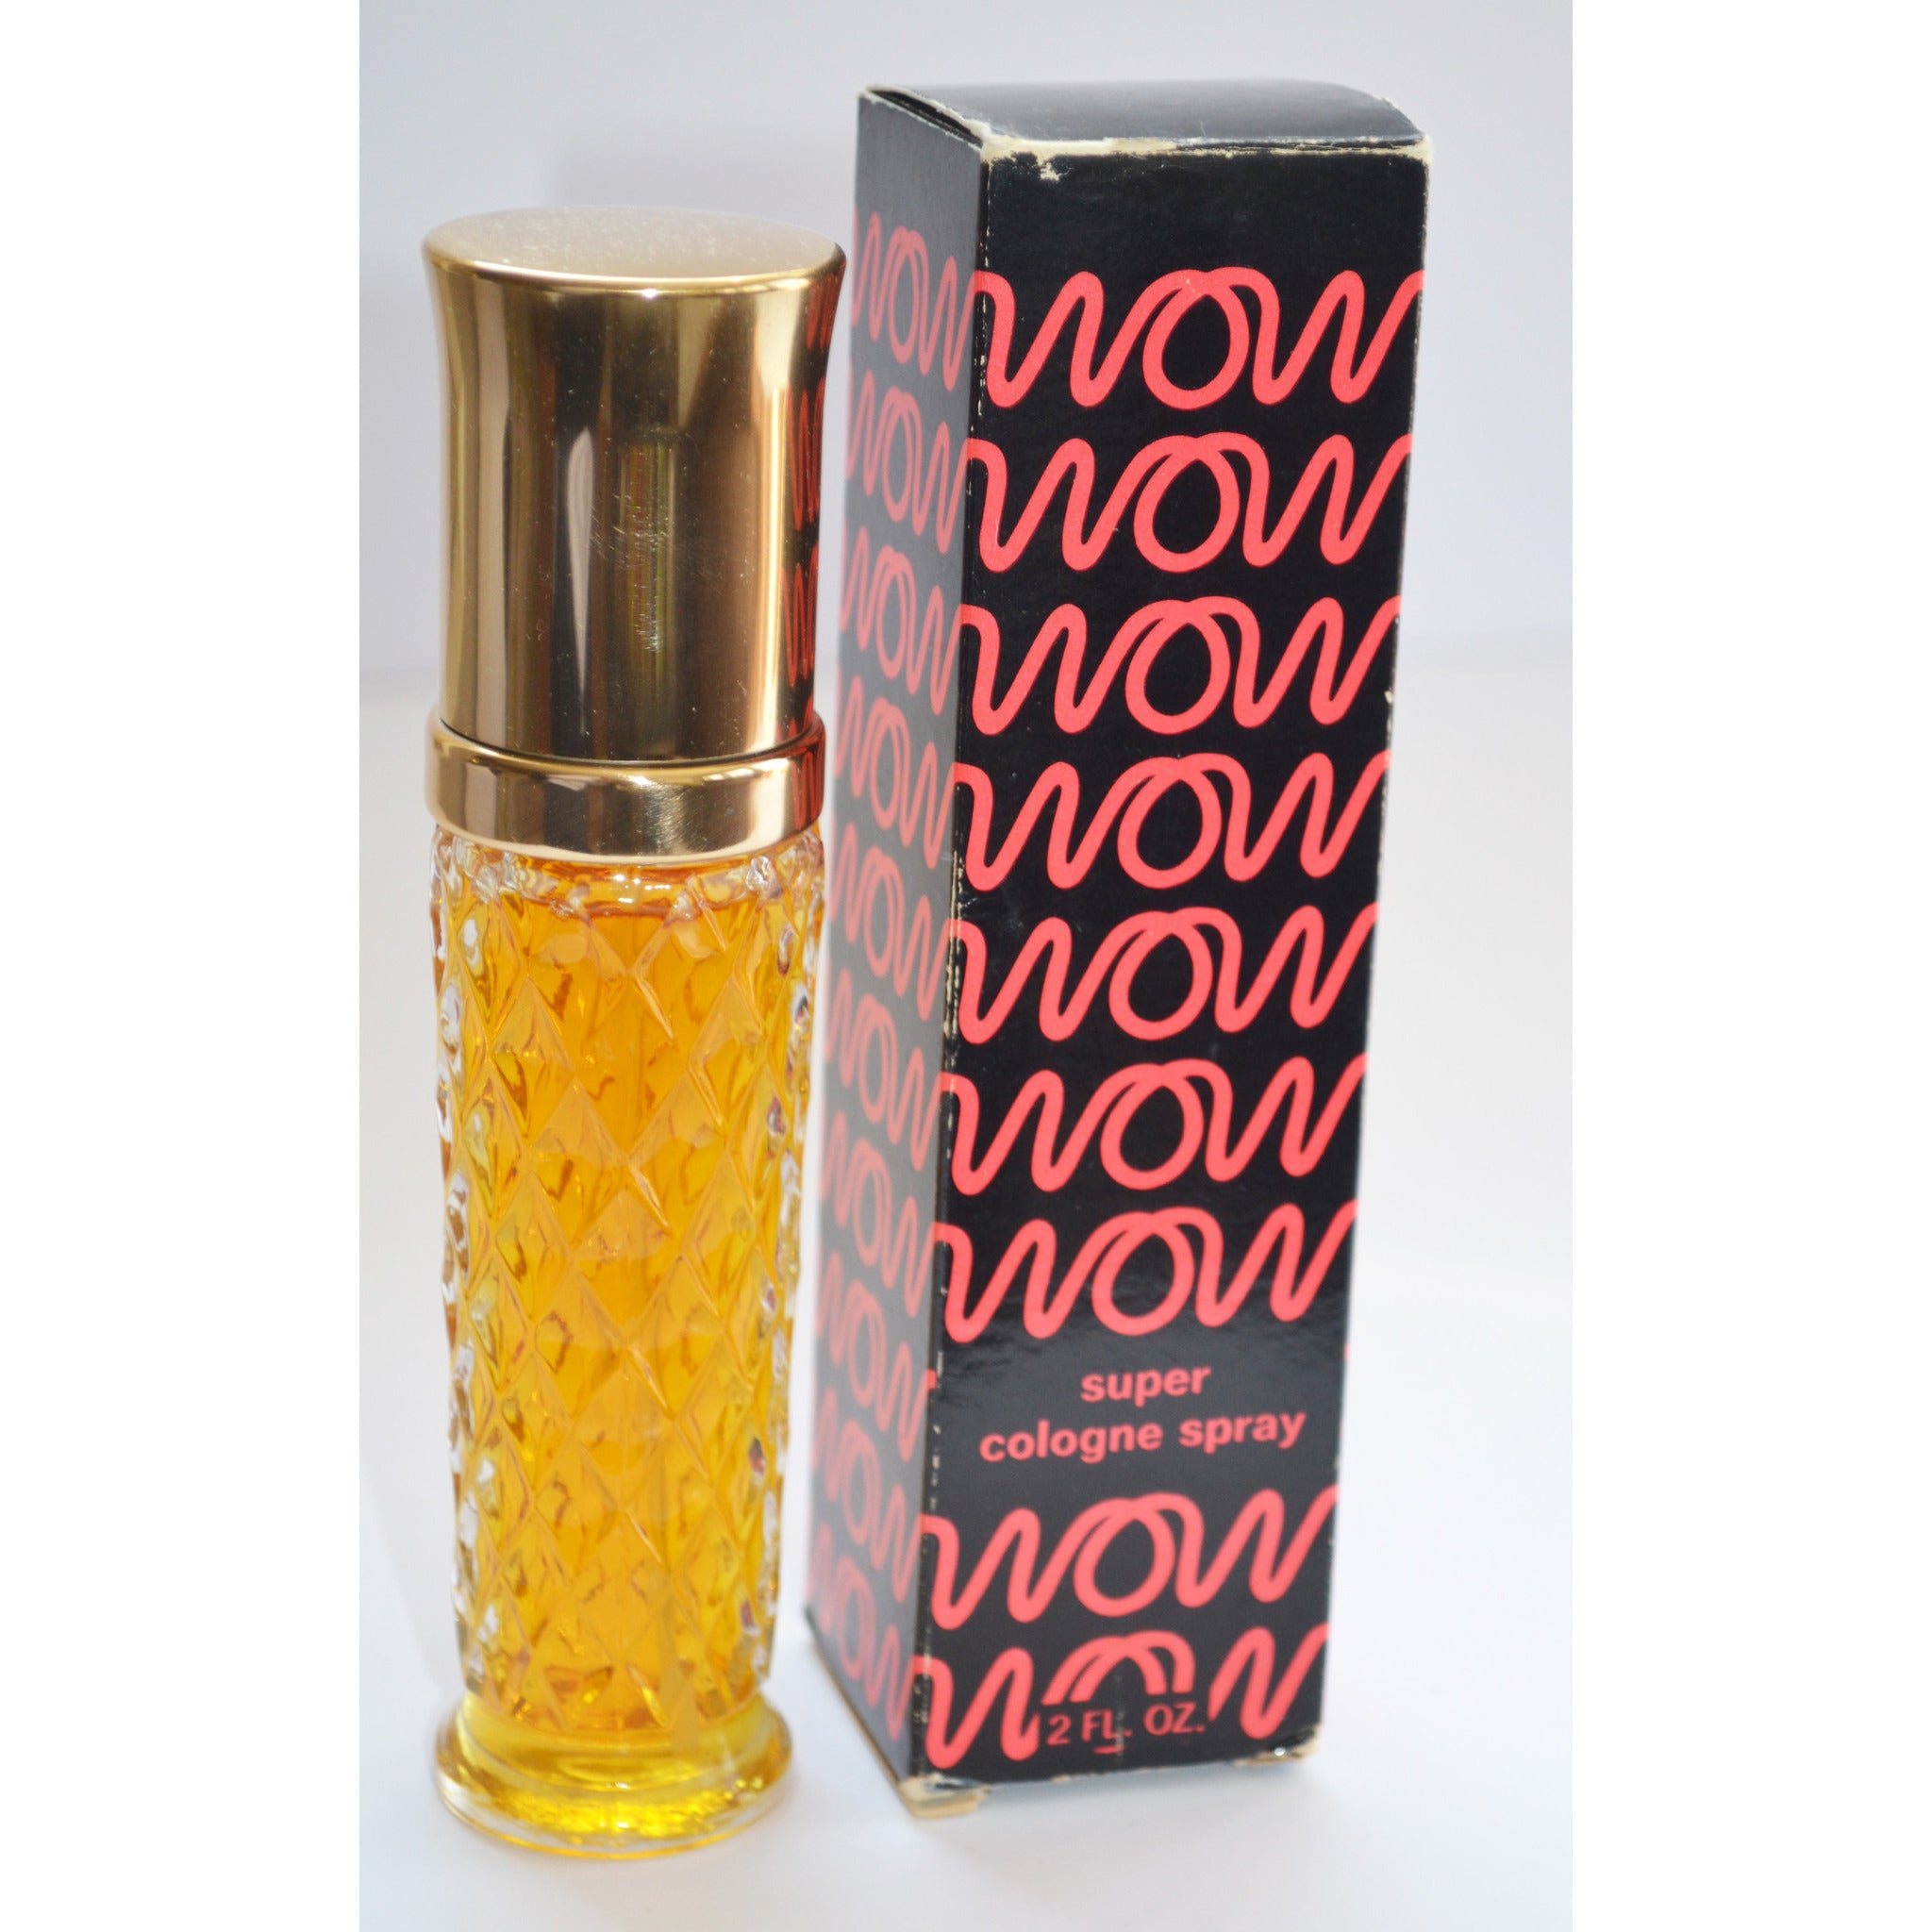 Vintage WOW Super Cologne